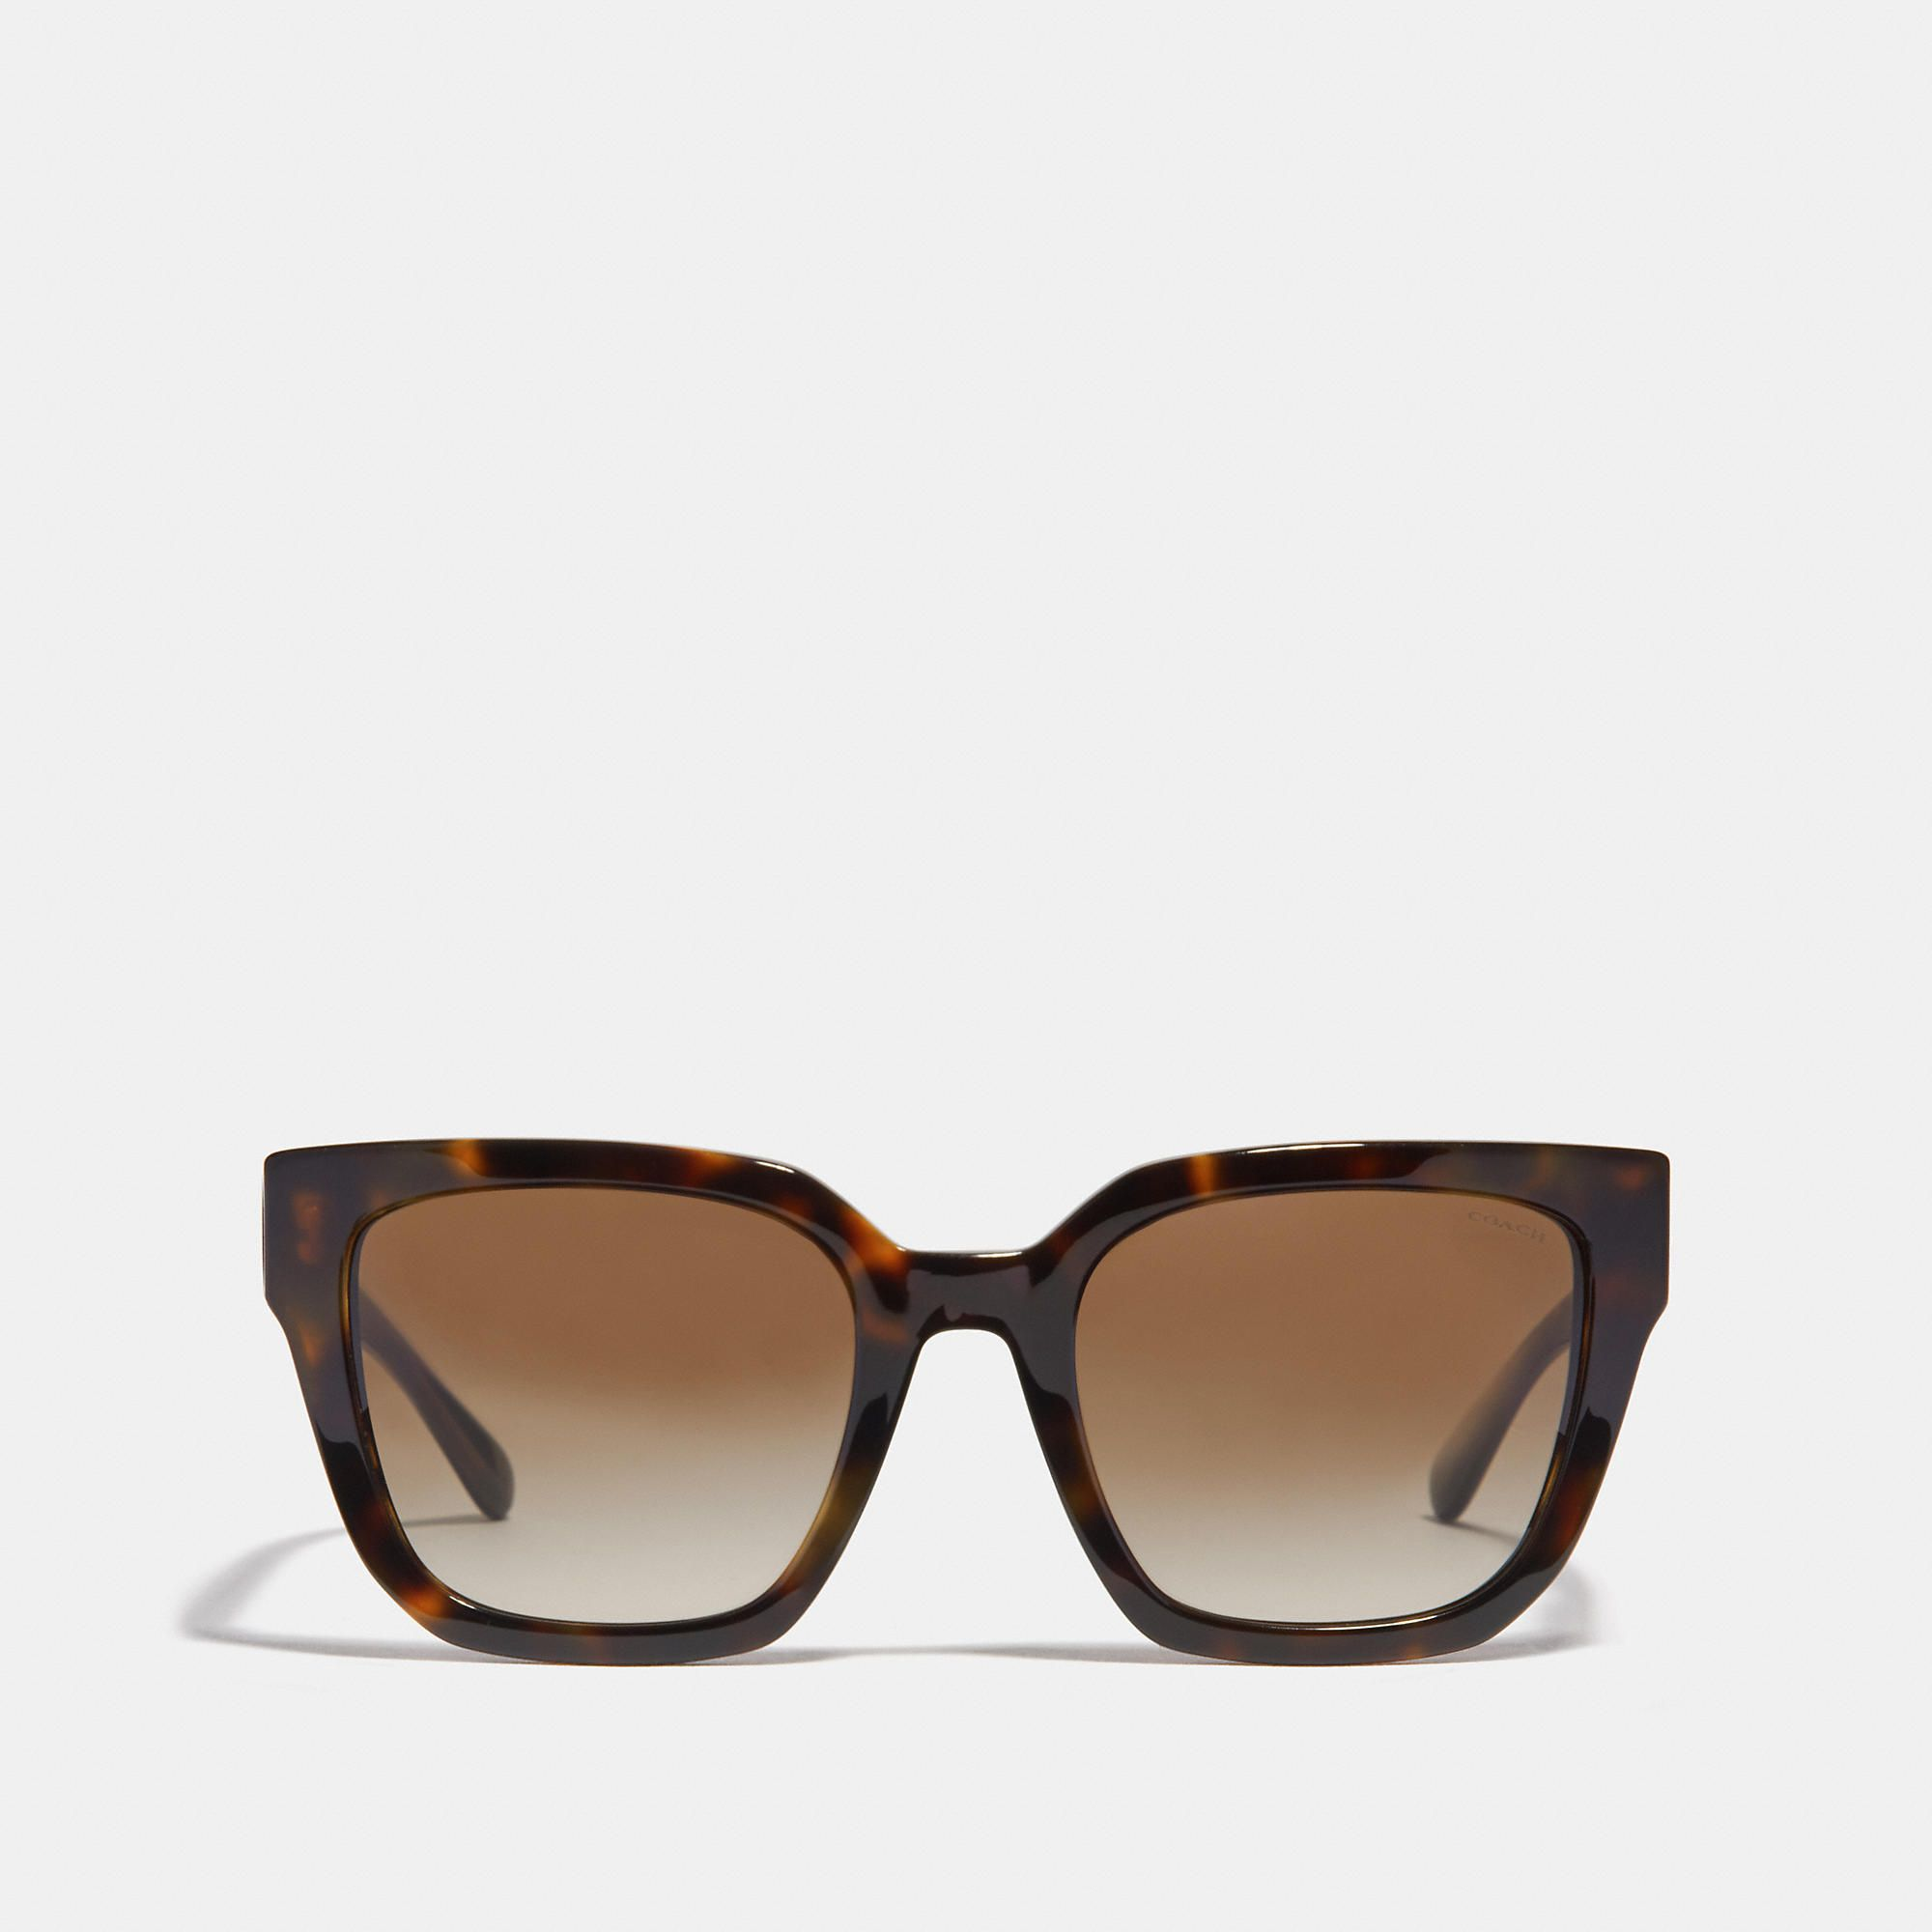 0fd6467490751 COACH Horse And Carriagre Hologram Square Sunglasses - Women s Sunwear